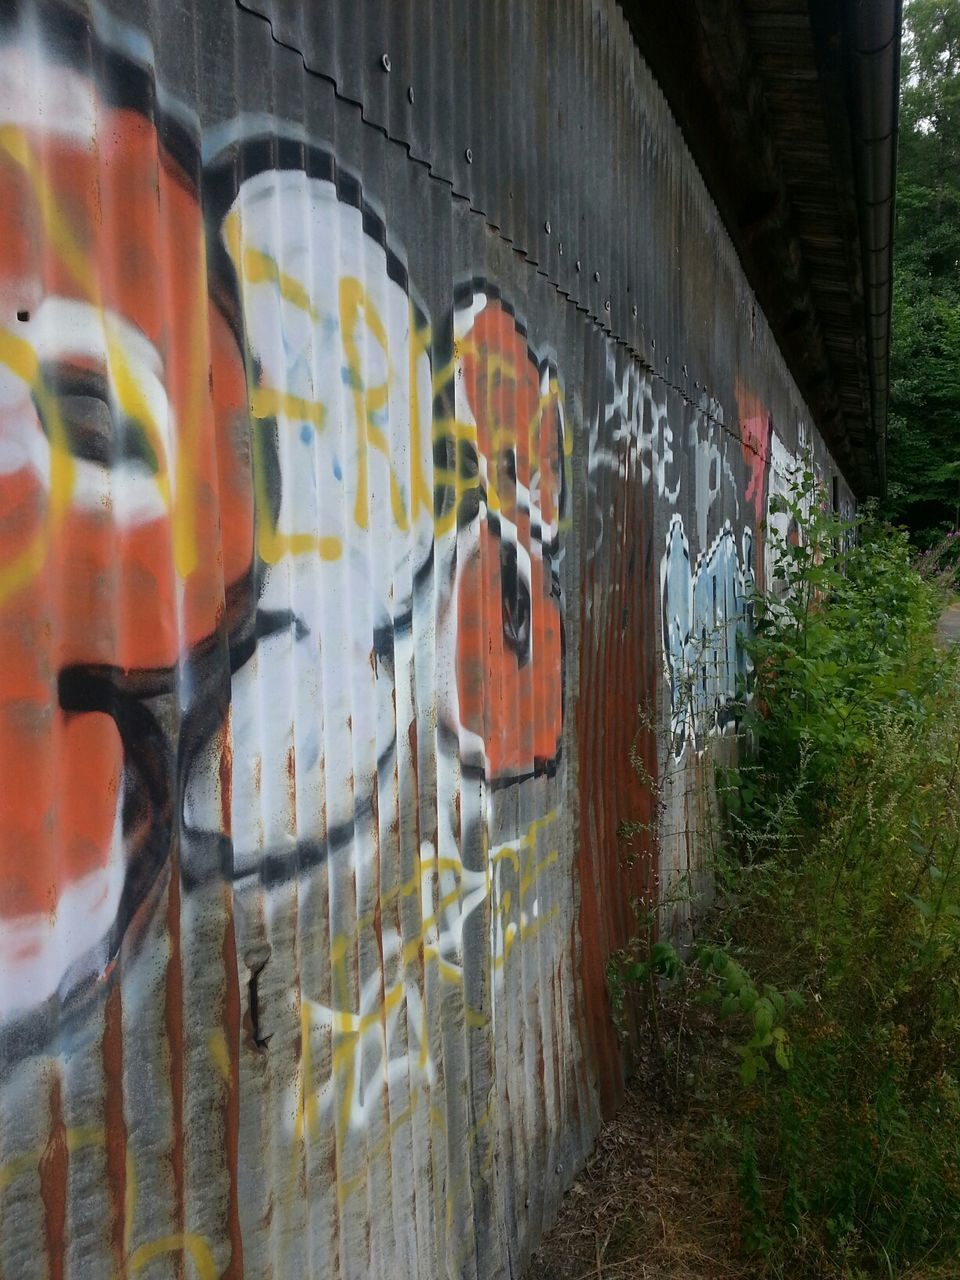 graffiti, built structure, architecture, text, building exterior, no people, outdoors, day, city